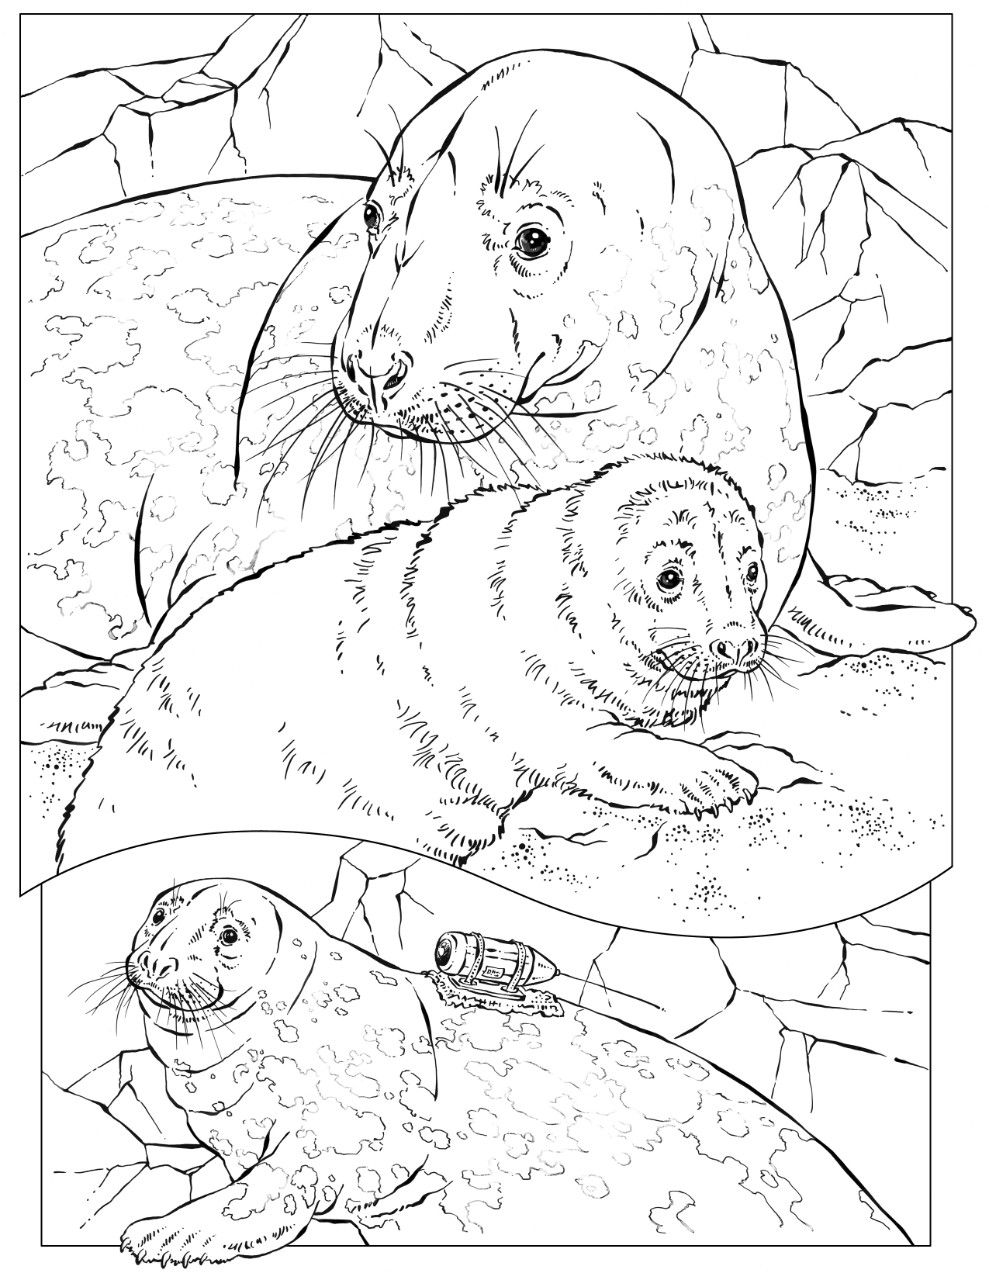 Coloring Book Animals A To I Animal Coloring Pages Shark Coloring Pages Coloring Pages